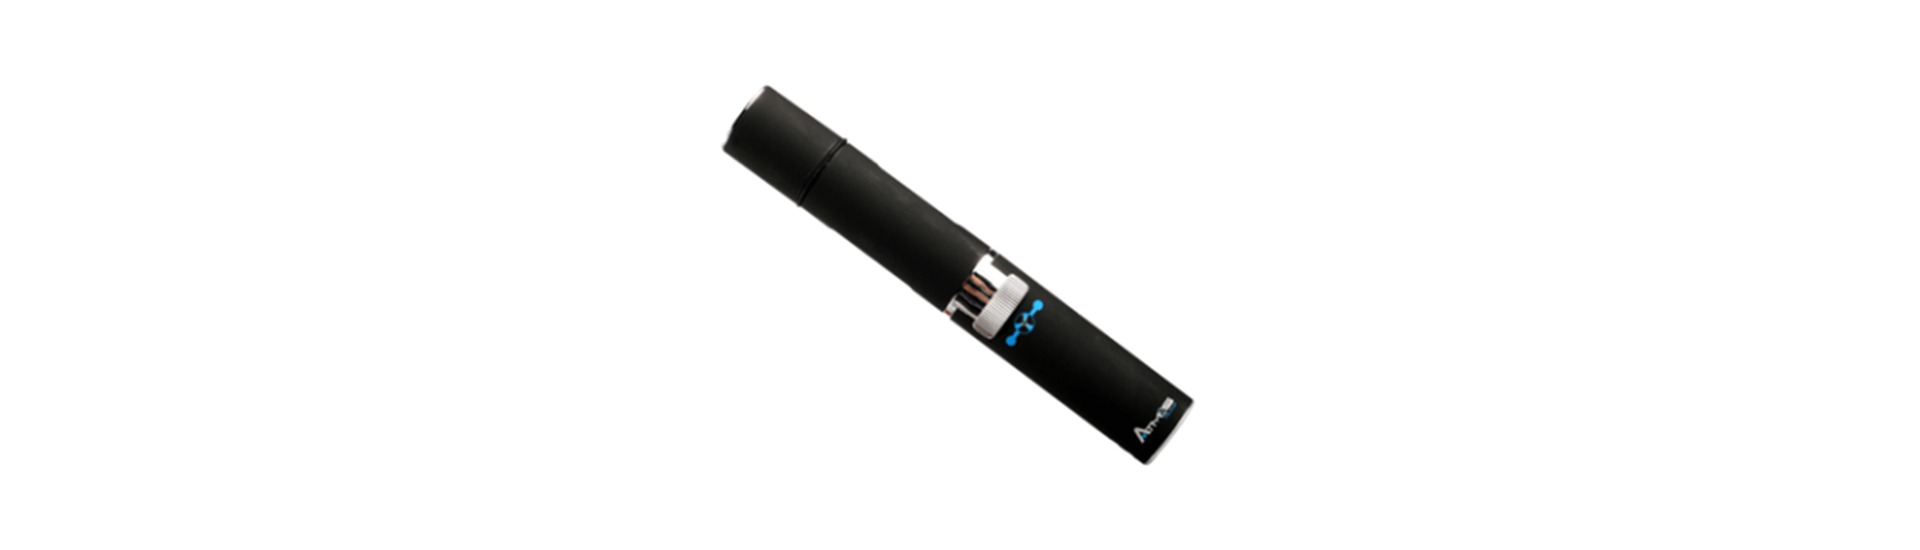 Atmos Nuke Portable Dual Cartridge Vaporizer